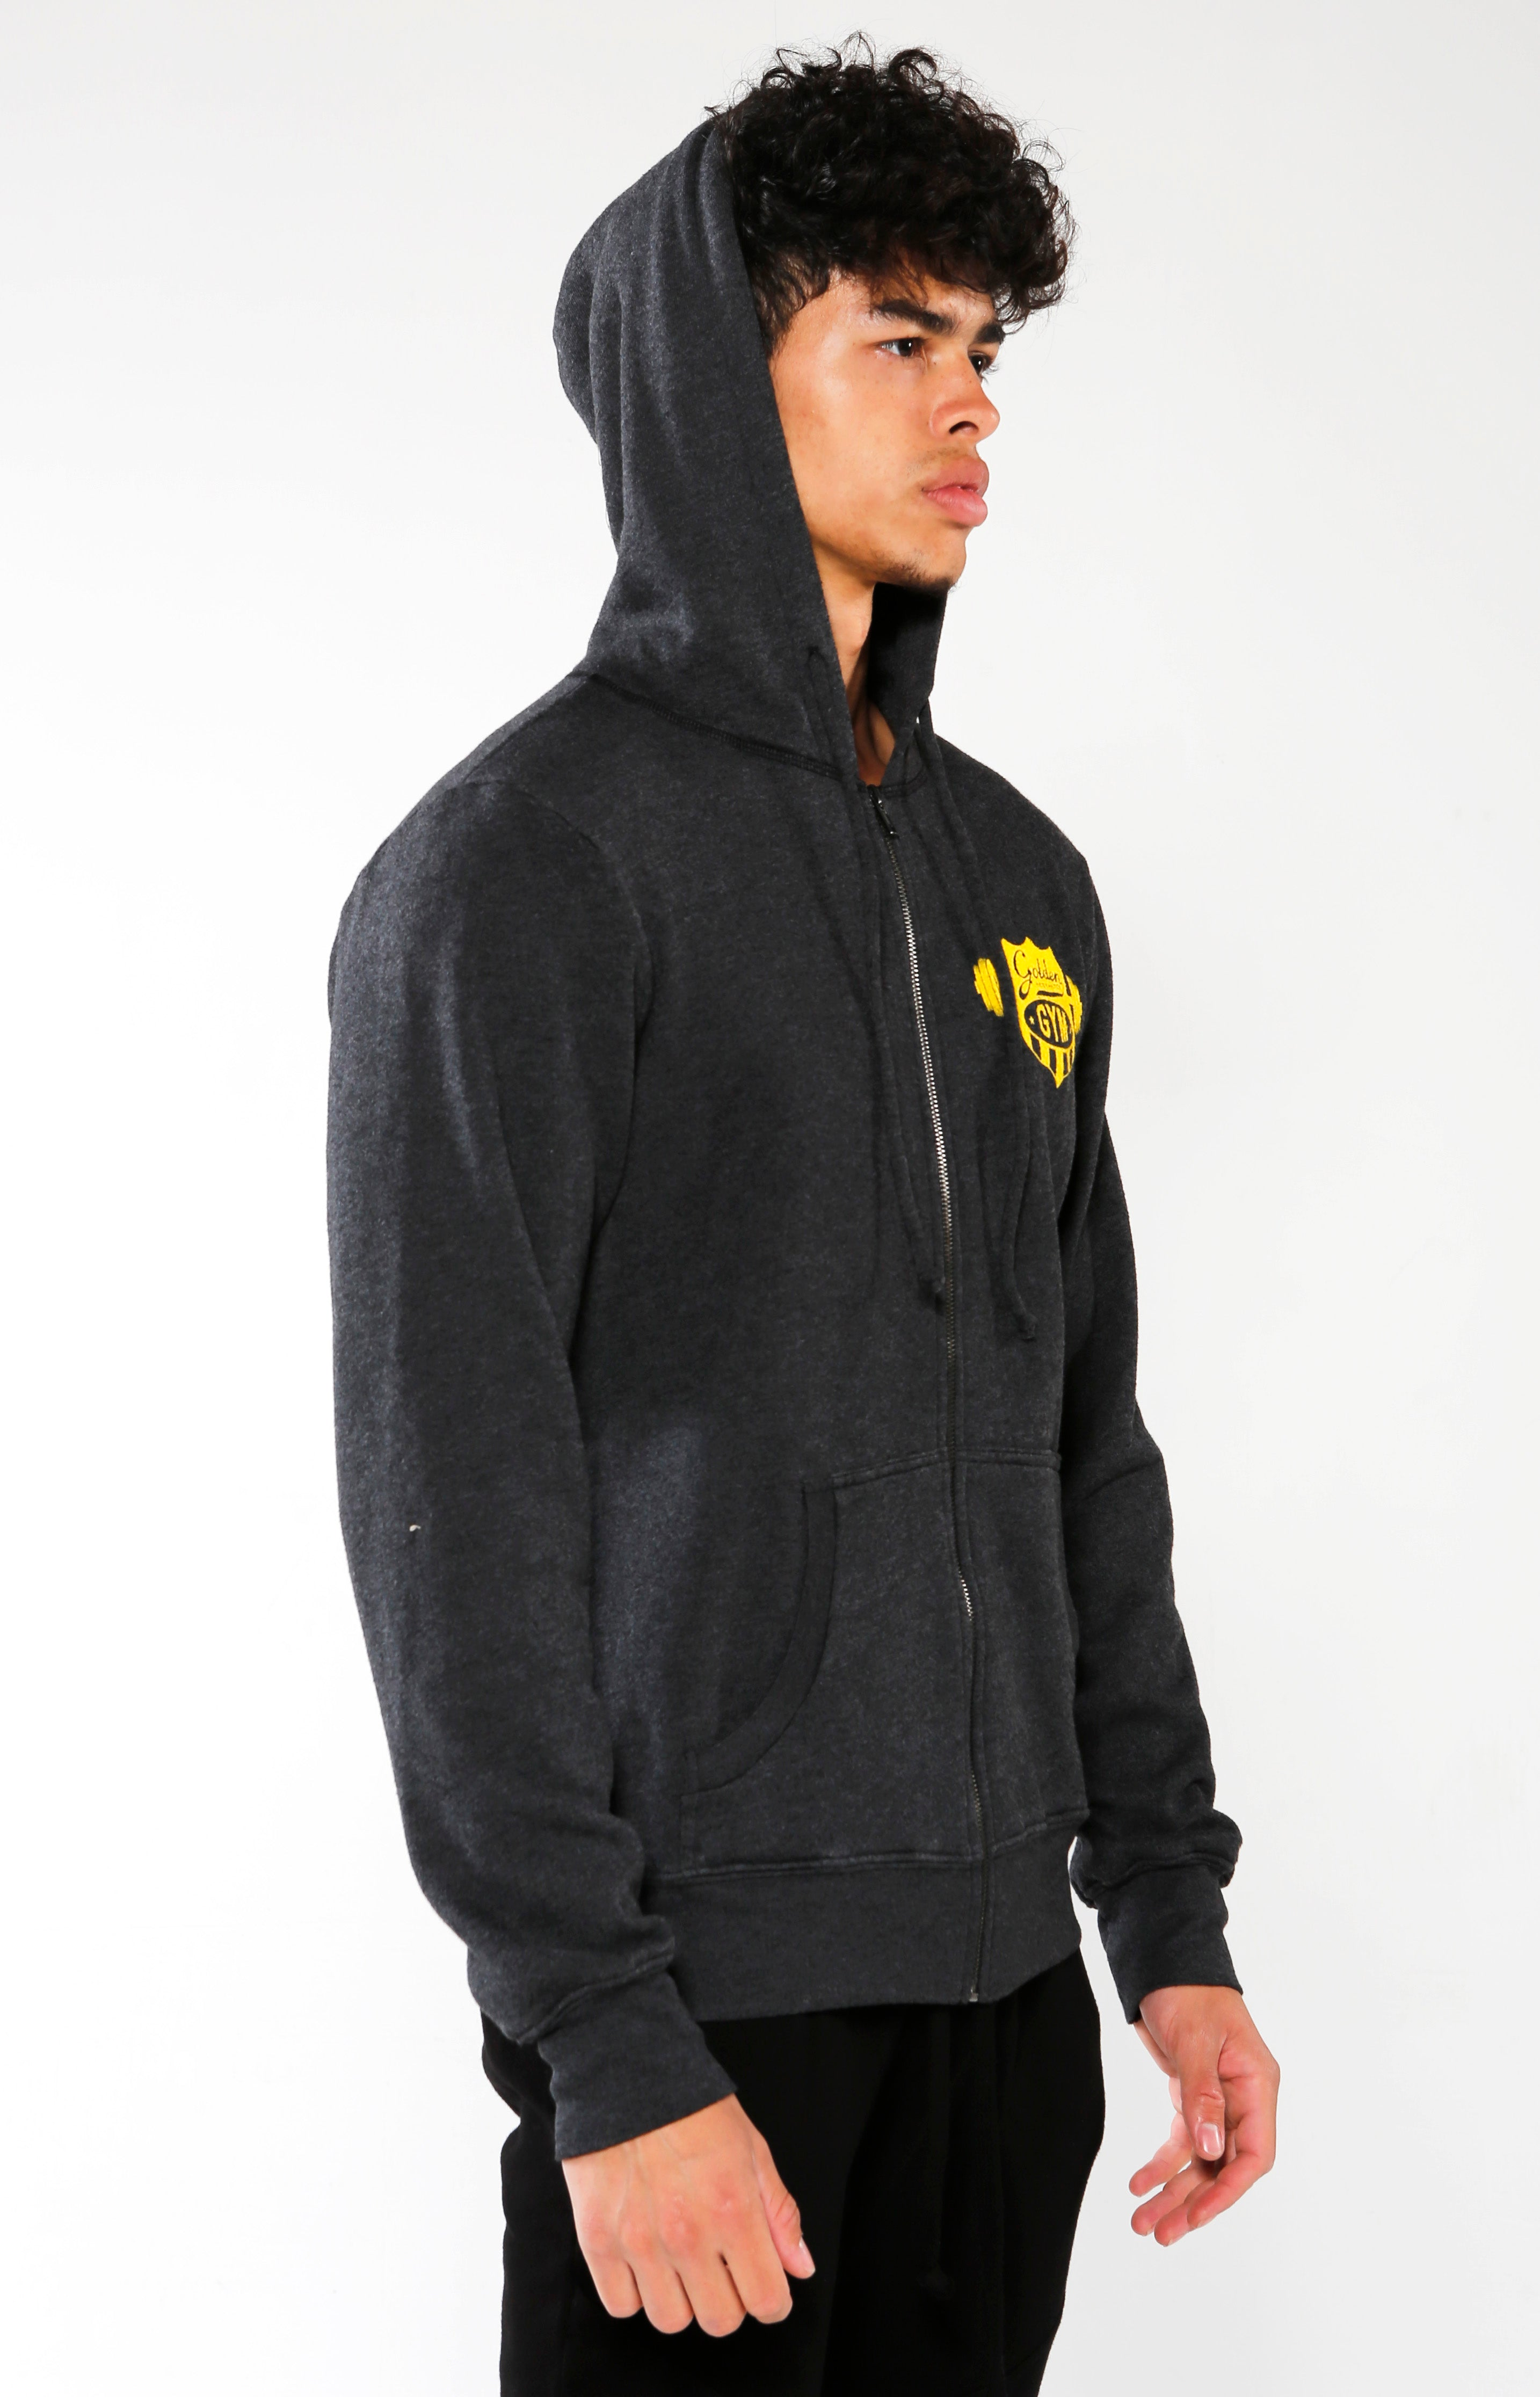 Men's Black Gym Crest Hoodie | Golden Aesthetics - Golden Aesthetics